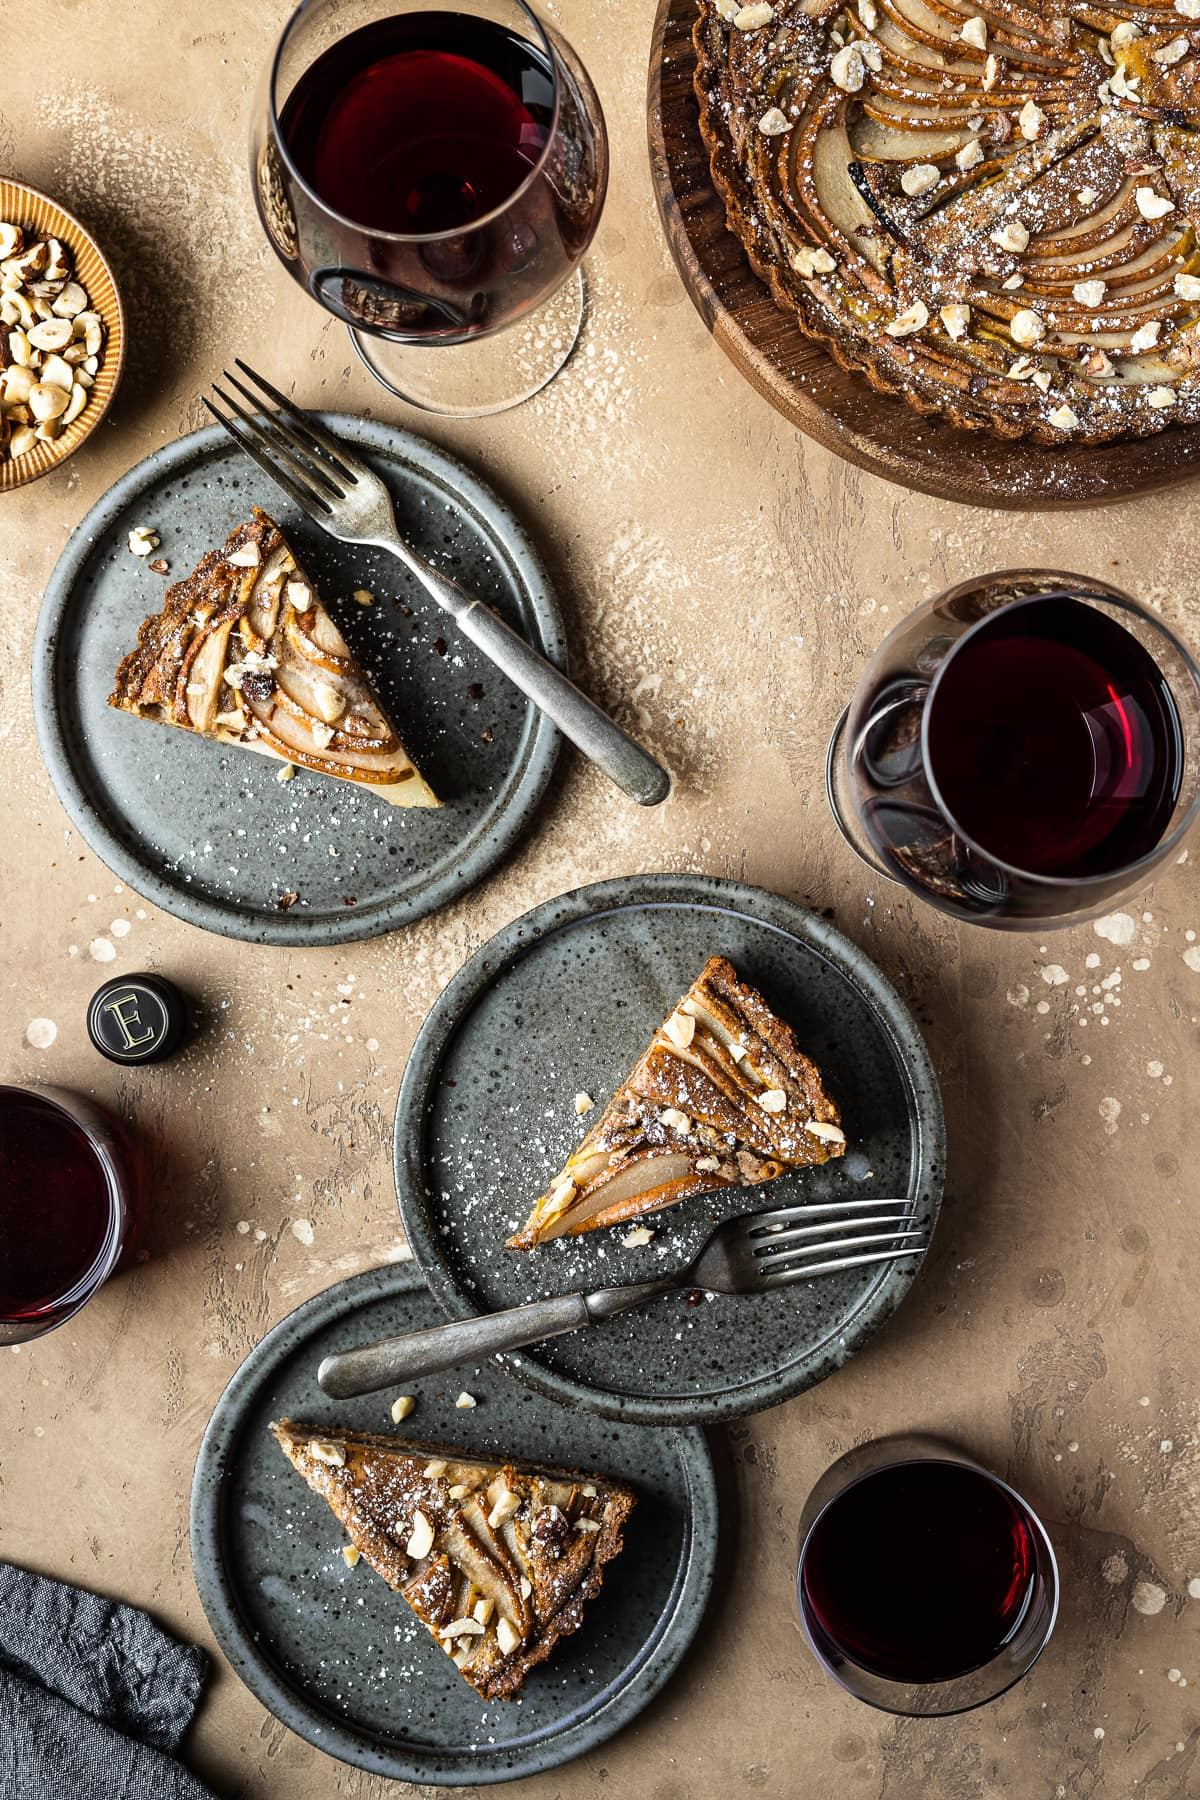 Three pear hazelnut tart slices on speckled grey blue ceramic plates. Vintage forks rests on the right side of the slices. The plates are on a warm tan textured stone background. A small bit of a textured grey napkin peeks out from the bottom left corner, and a small view of a bowl of chopped hazelnuts is visible at top left. There are four full glasses of red wine arranged throughout the image. The remainder of the tart is at top right.